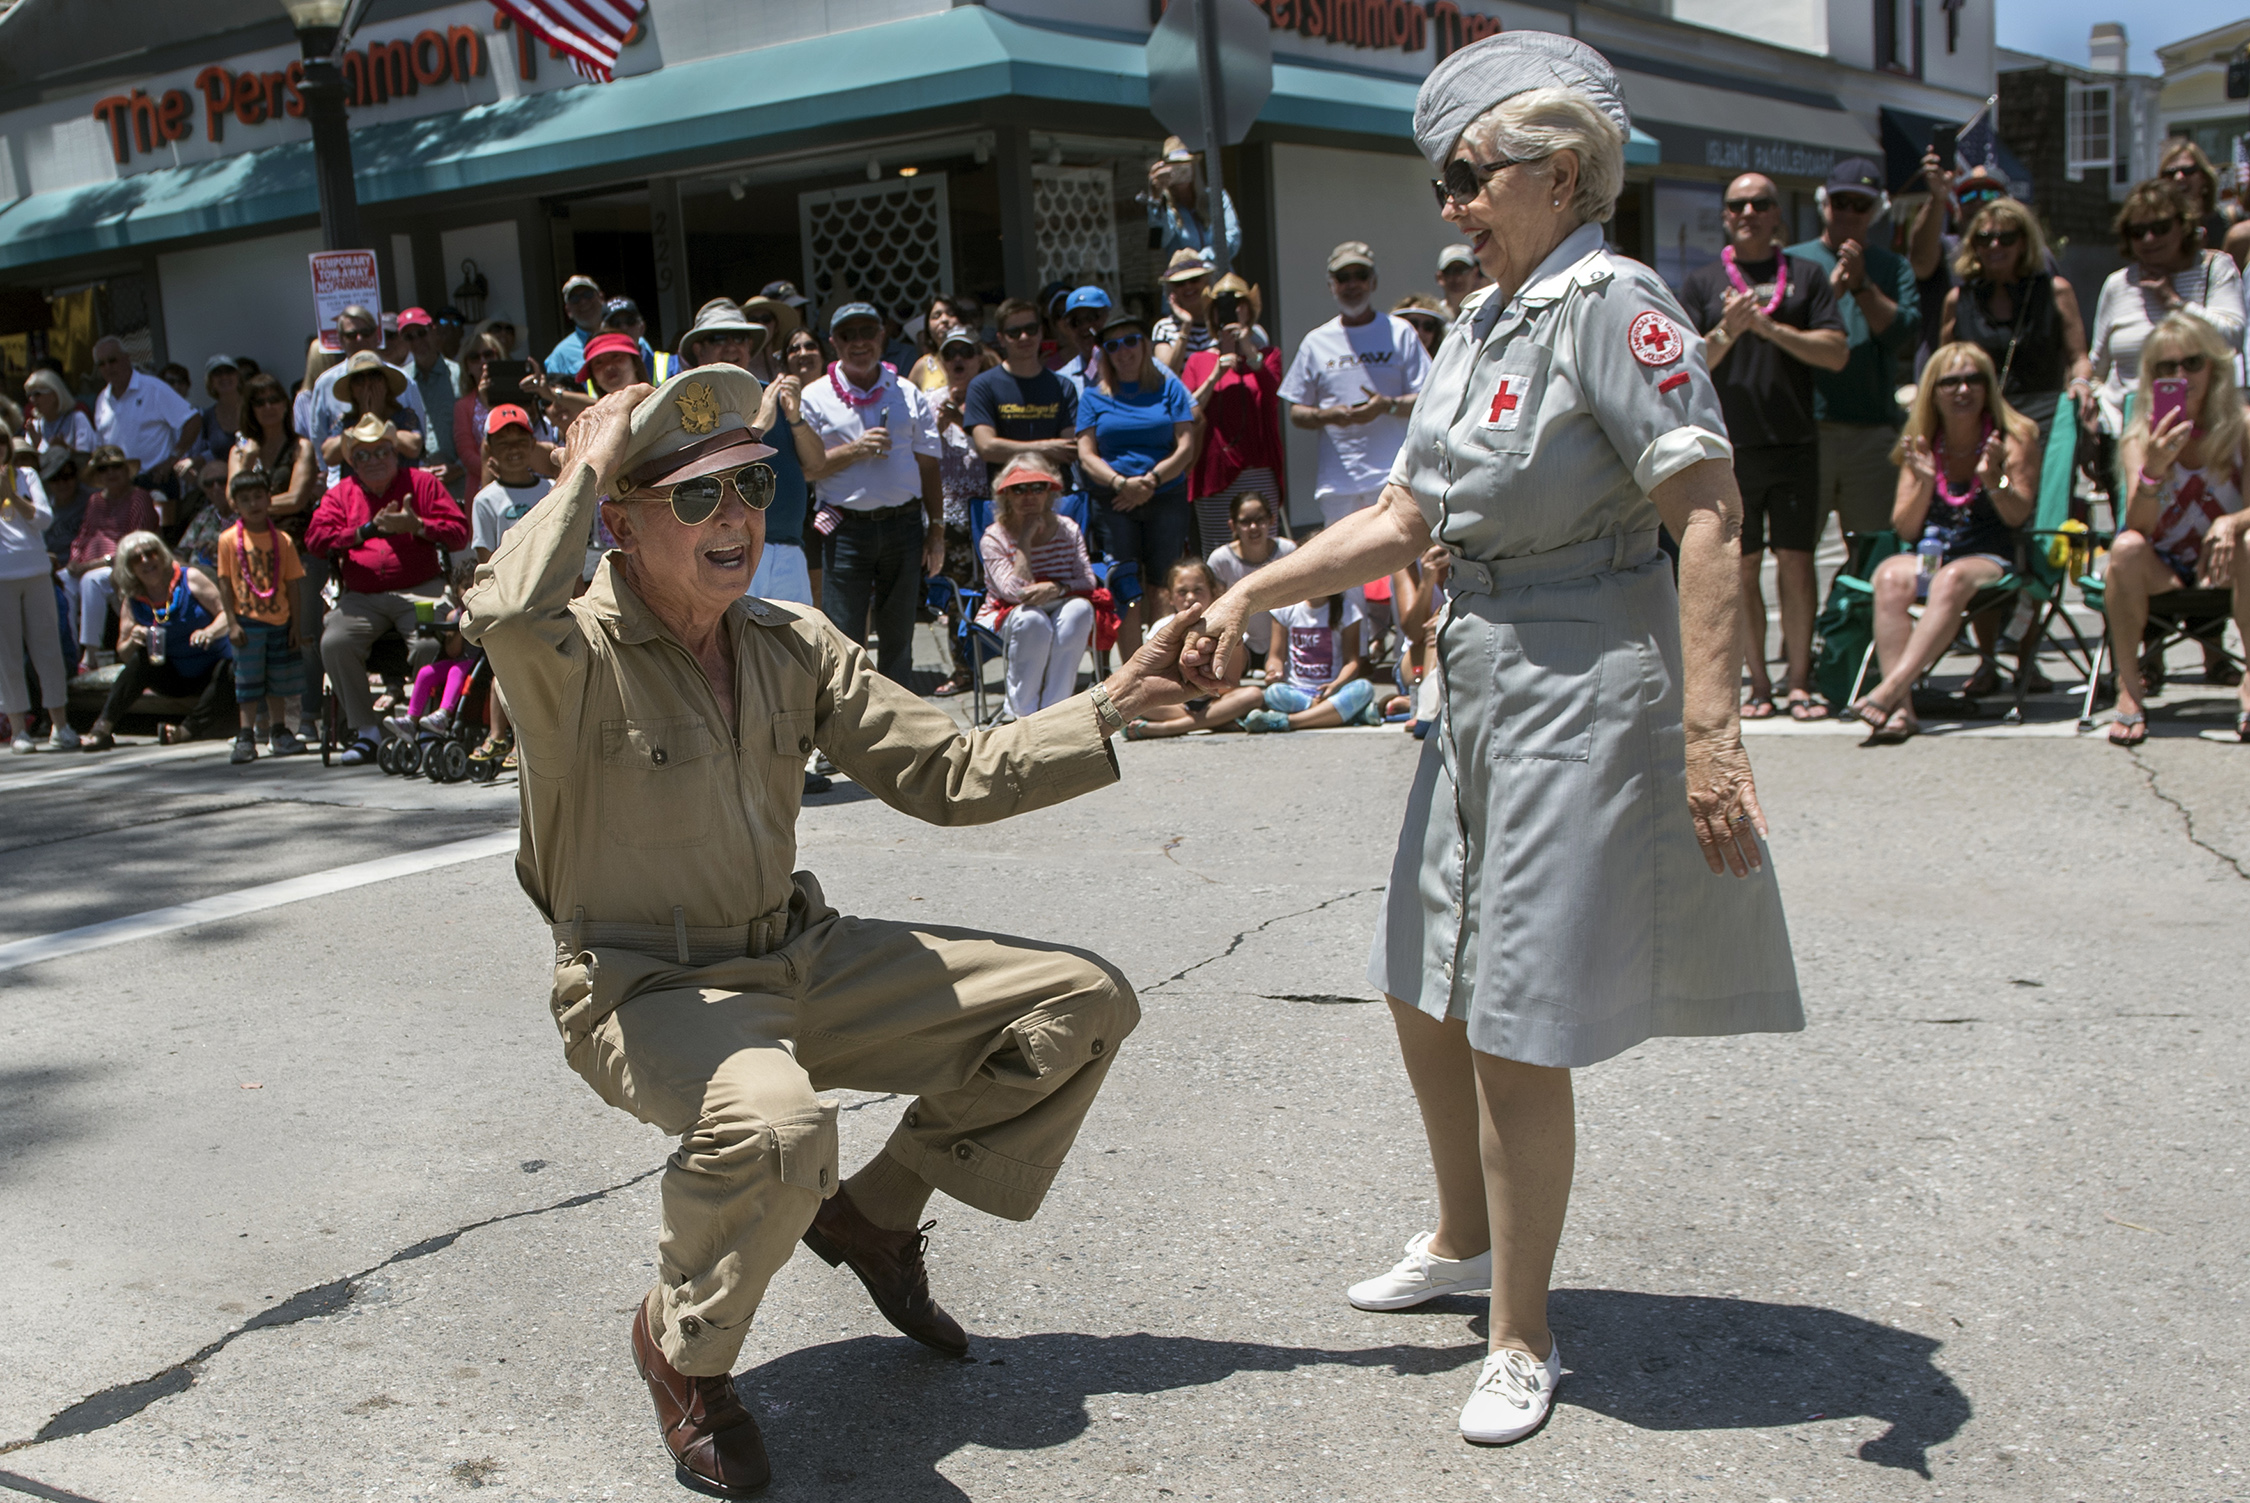 Cornell Iliescu and his swing dance partner Pat Wilke, revive history during the Balboa Island Parade in Newport Beach on Sunday, Jun  3, 2018